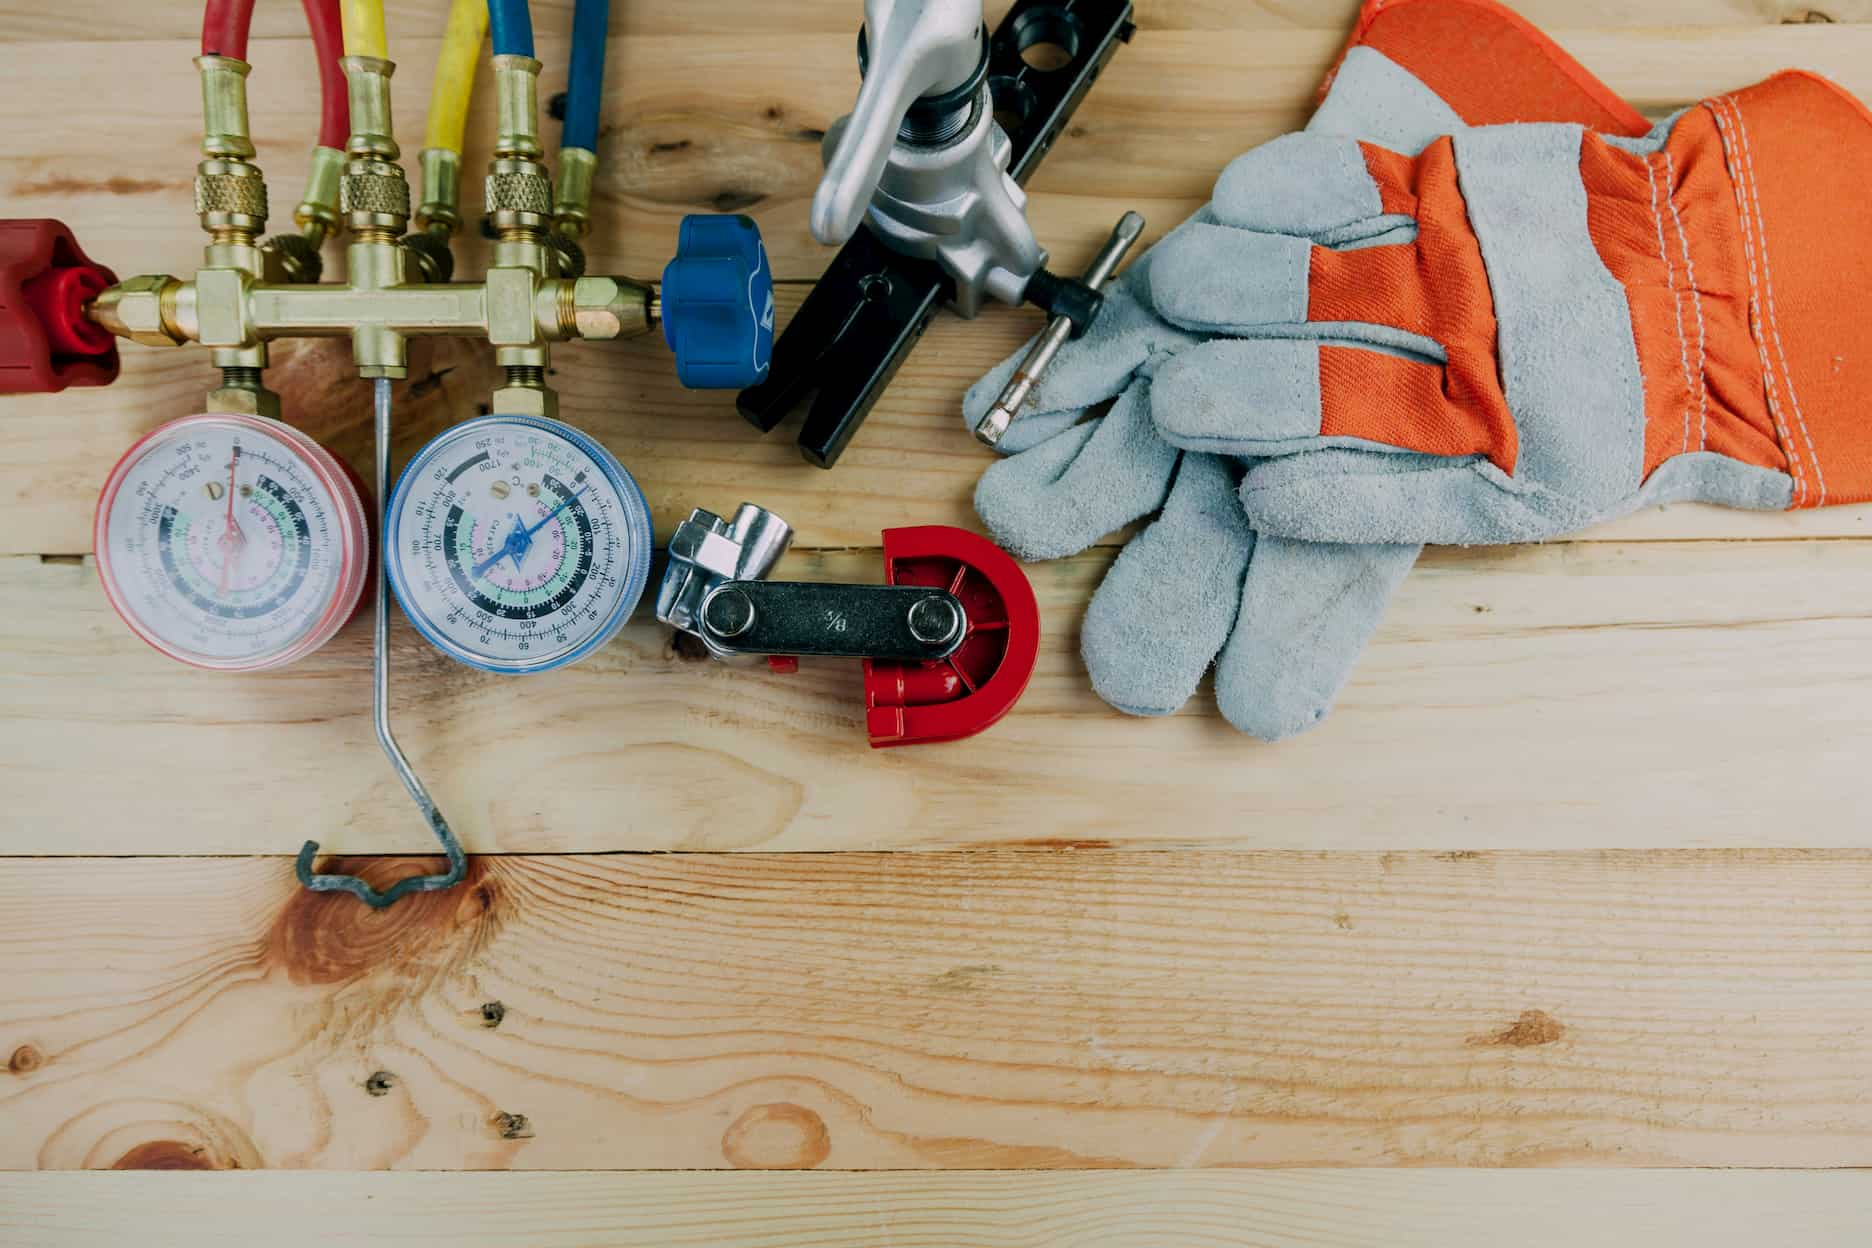 4 Common Furnace Problems and How to Troubleshoot Them